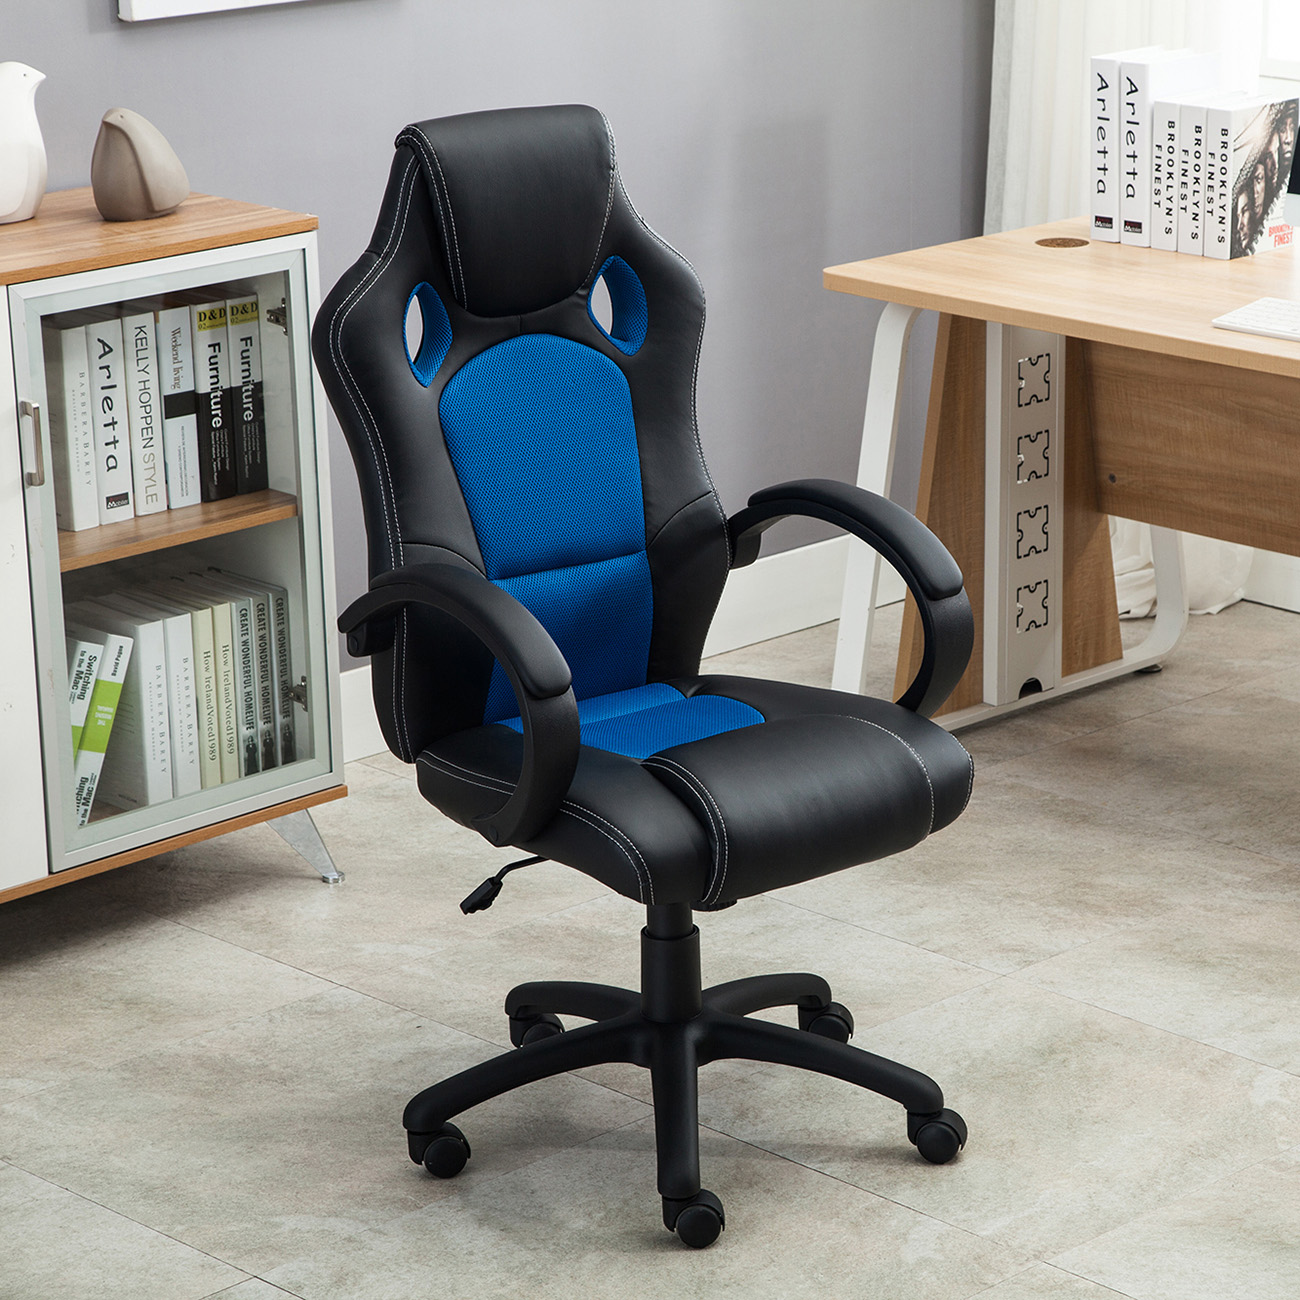 gamer computer chair for xbox high back race car style bucket seat office desk